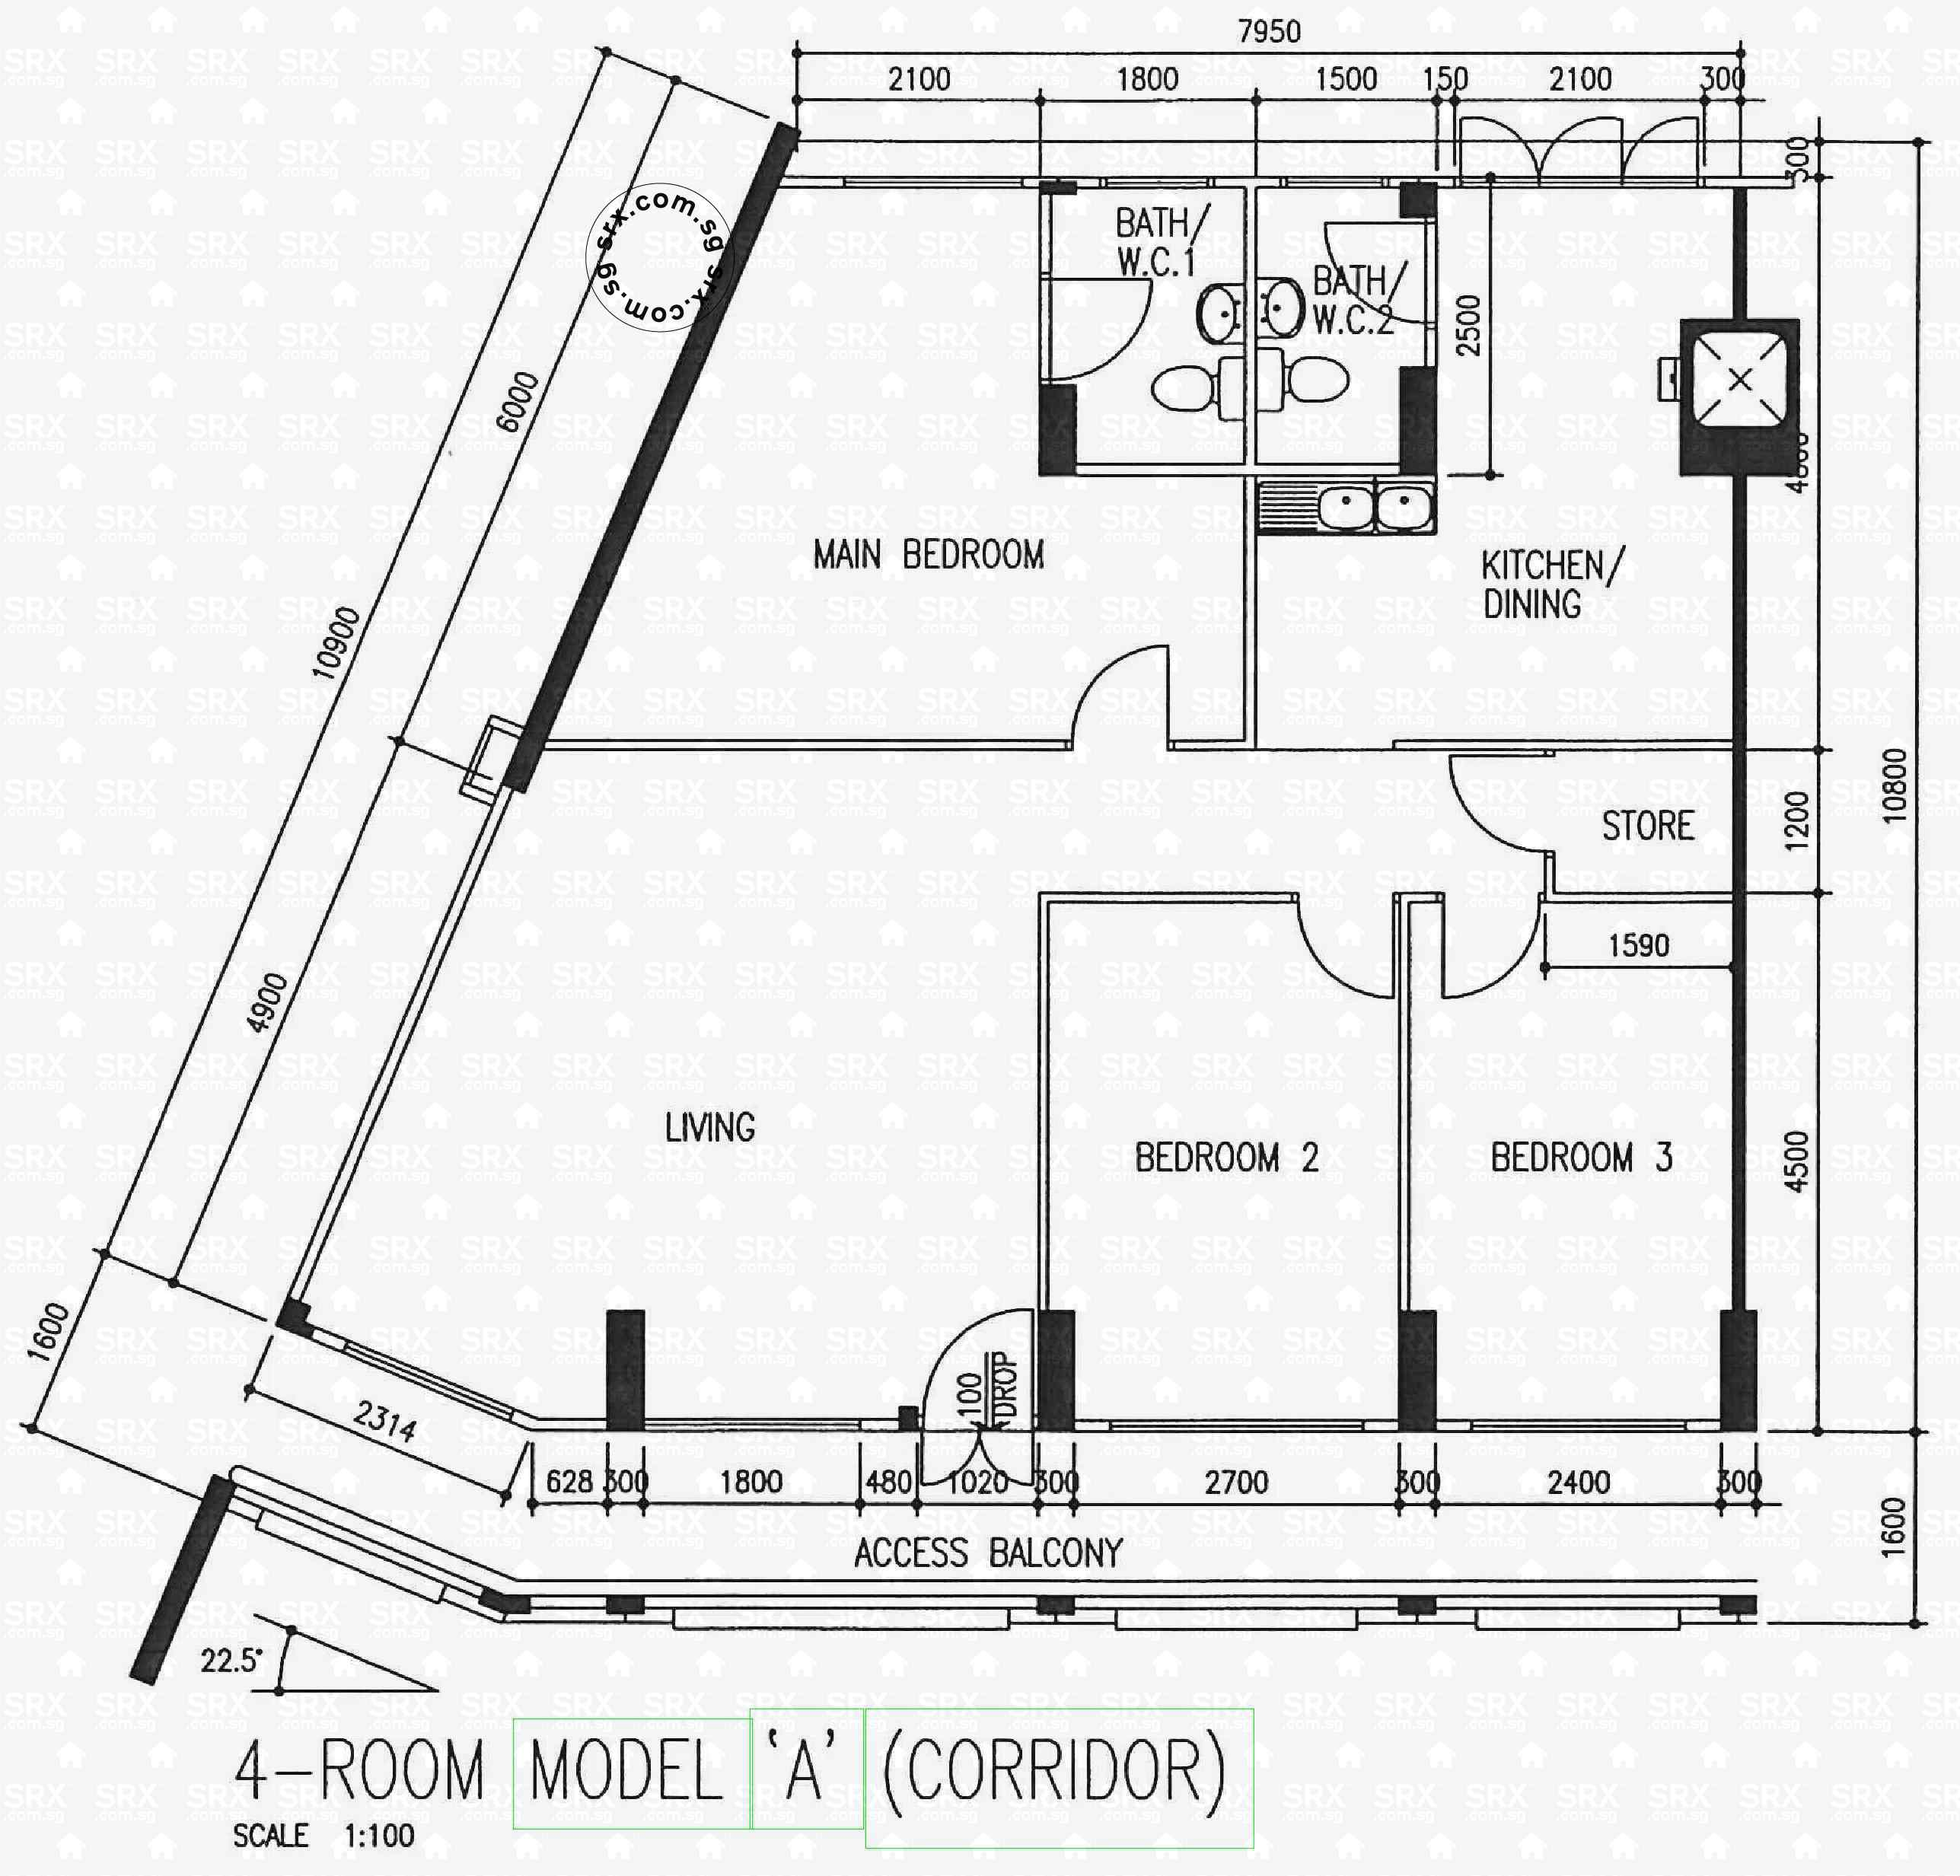 Floor plans for 521 serangoon north avenue 4 s 550521 hdb for 521 plan